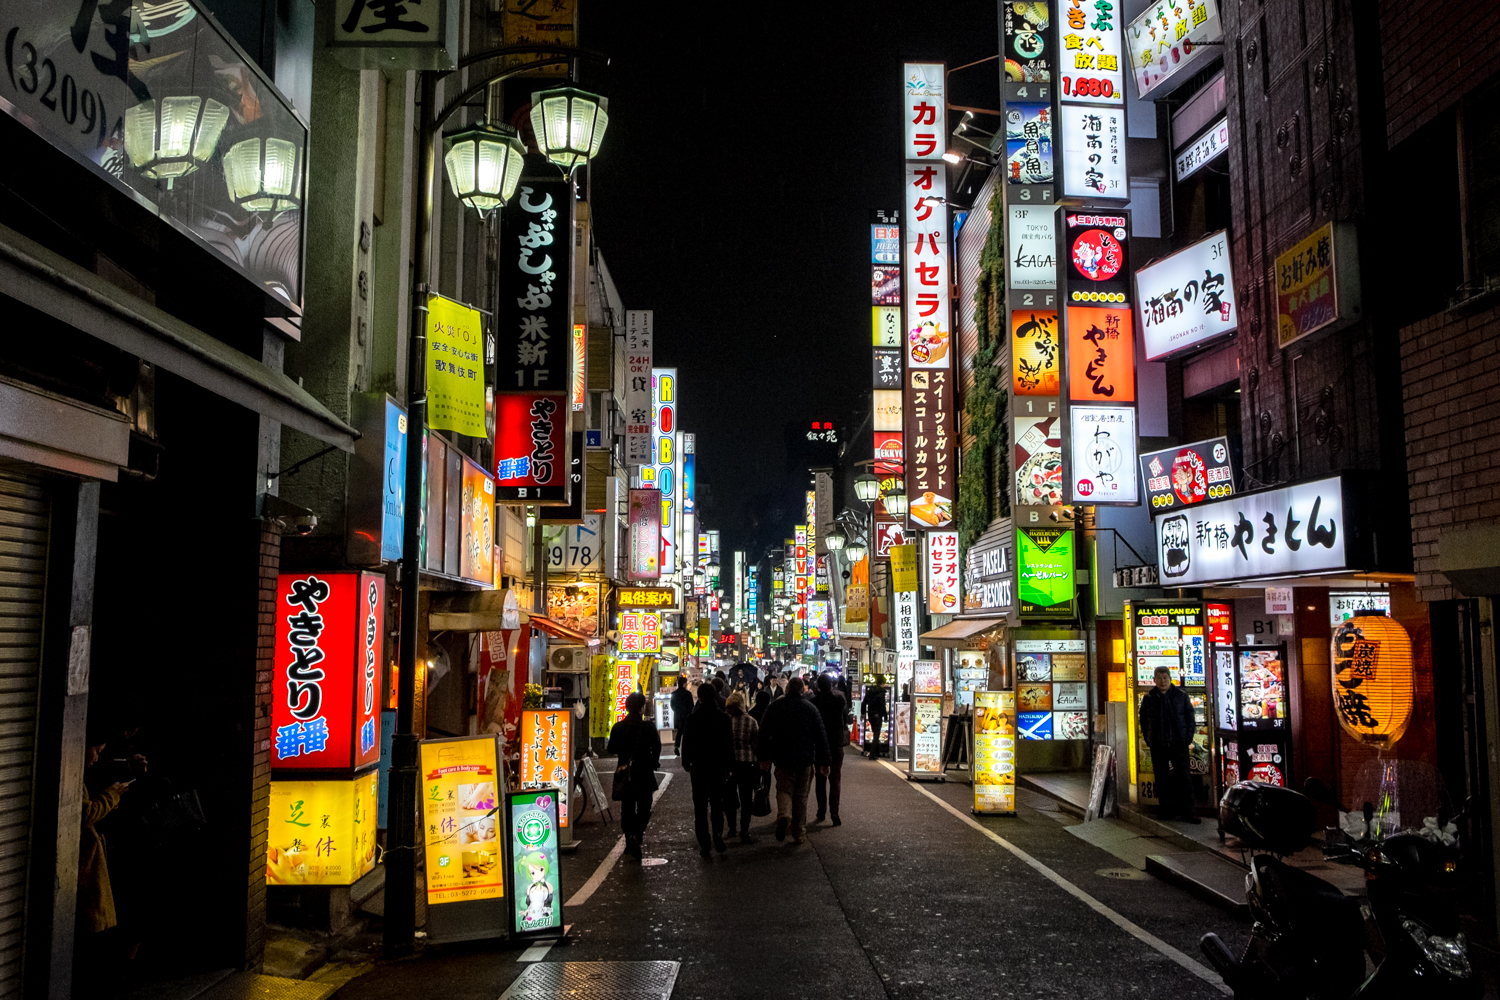 More signs filling the street in Kabukicho.